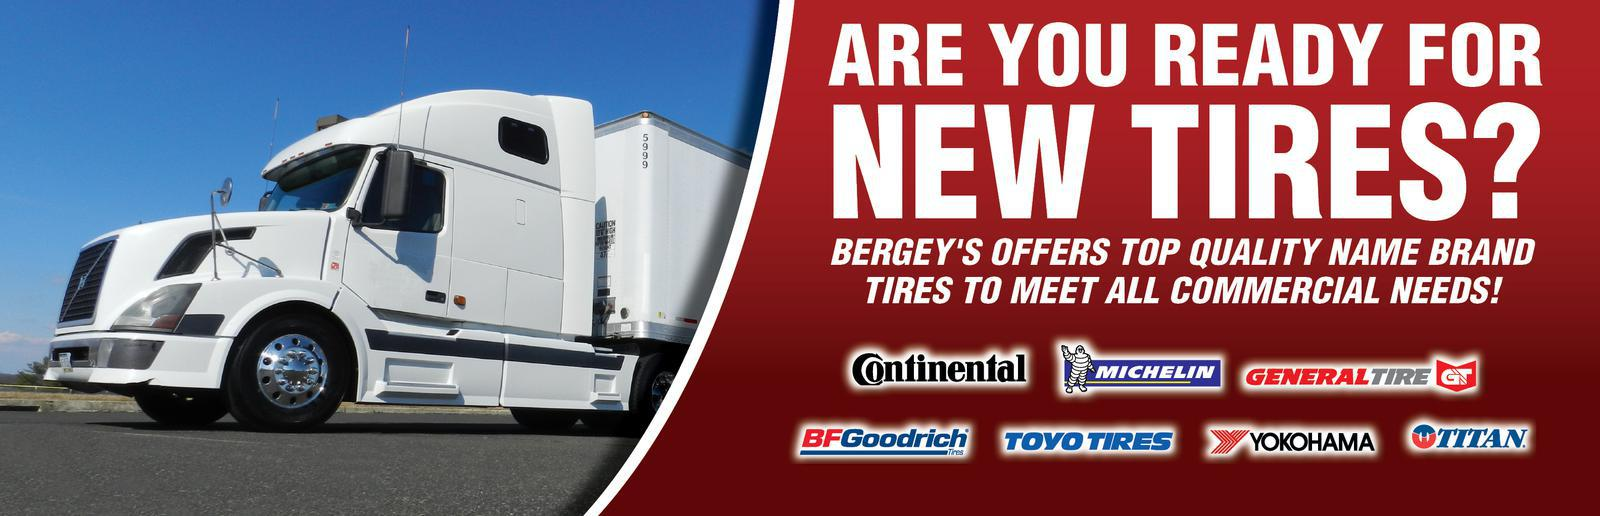 Bergey's offers top quality name brand tires to meet all commercial needs!